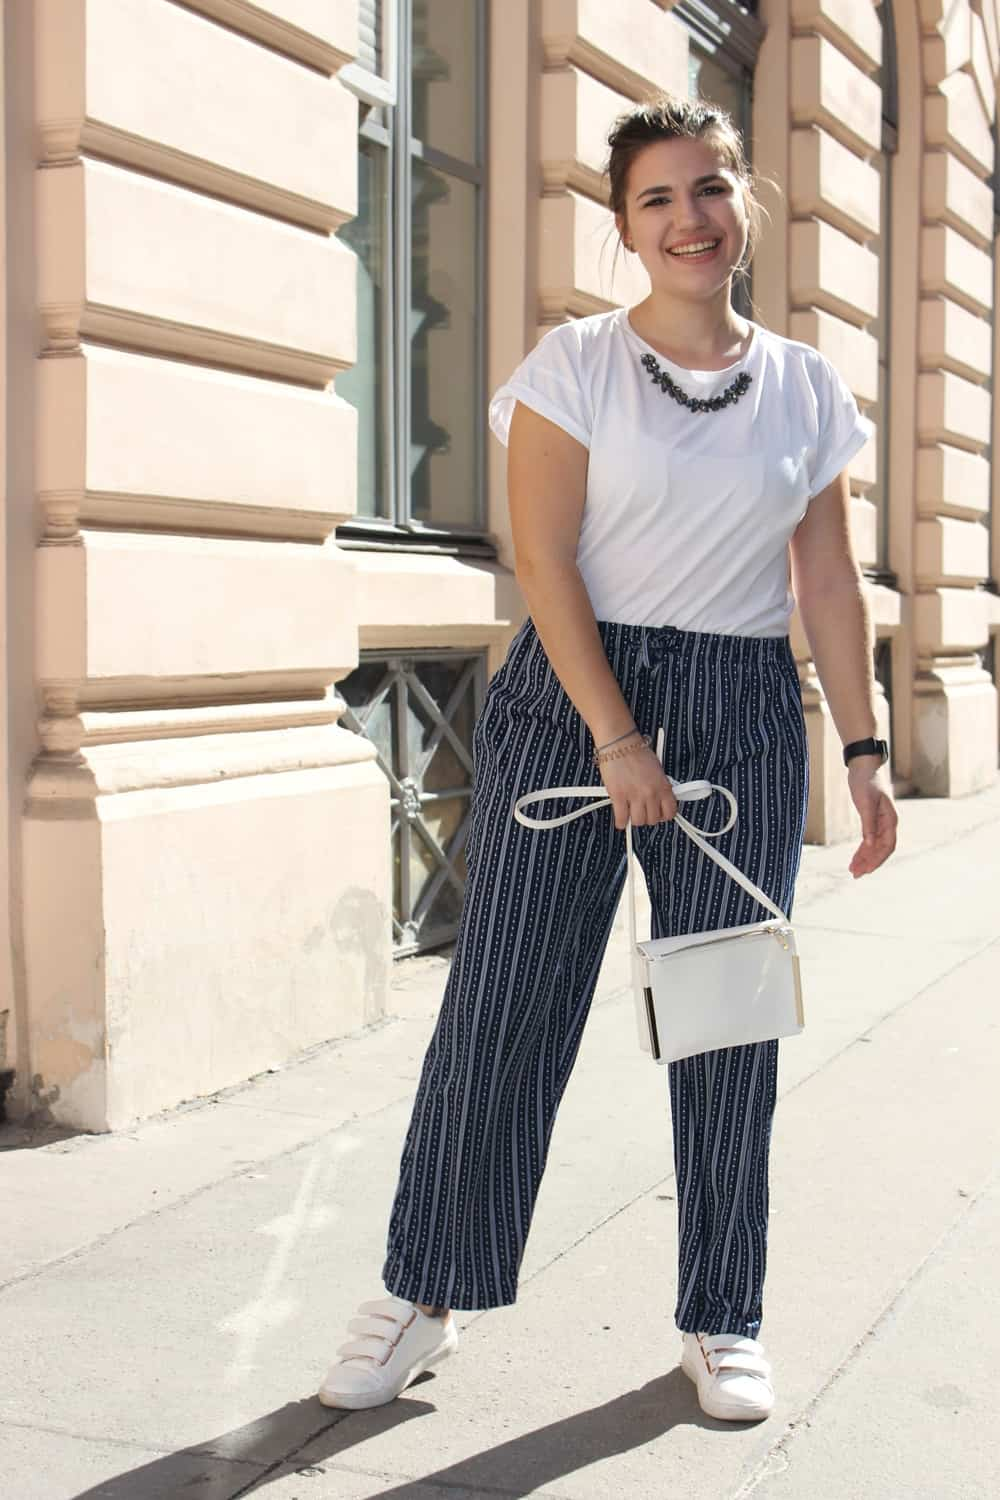 Sundaystolls in Culottes andbasic shirt